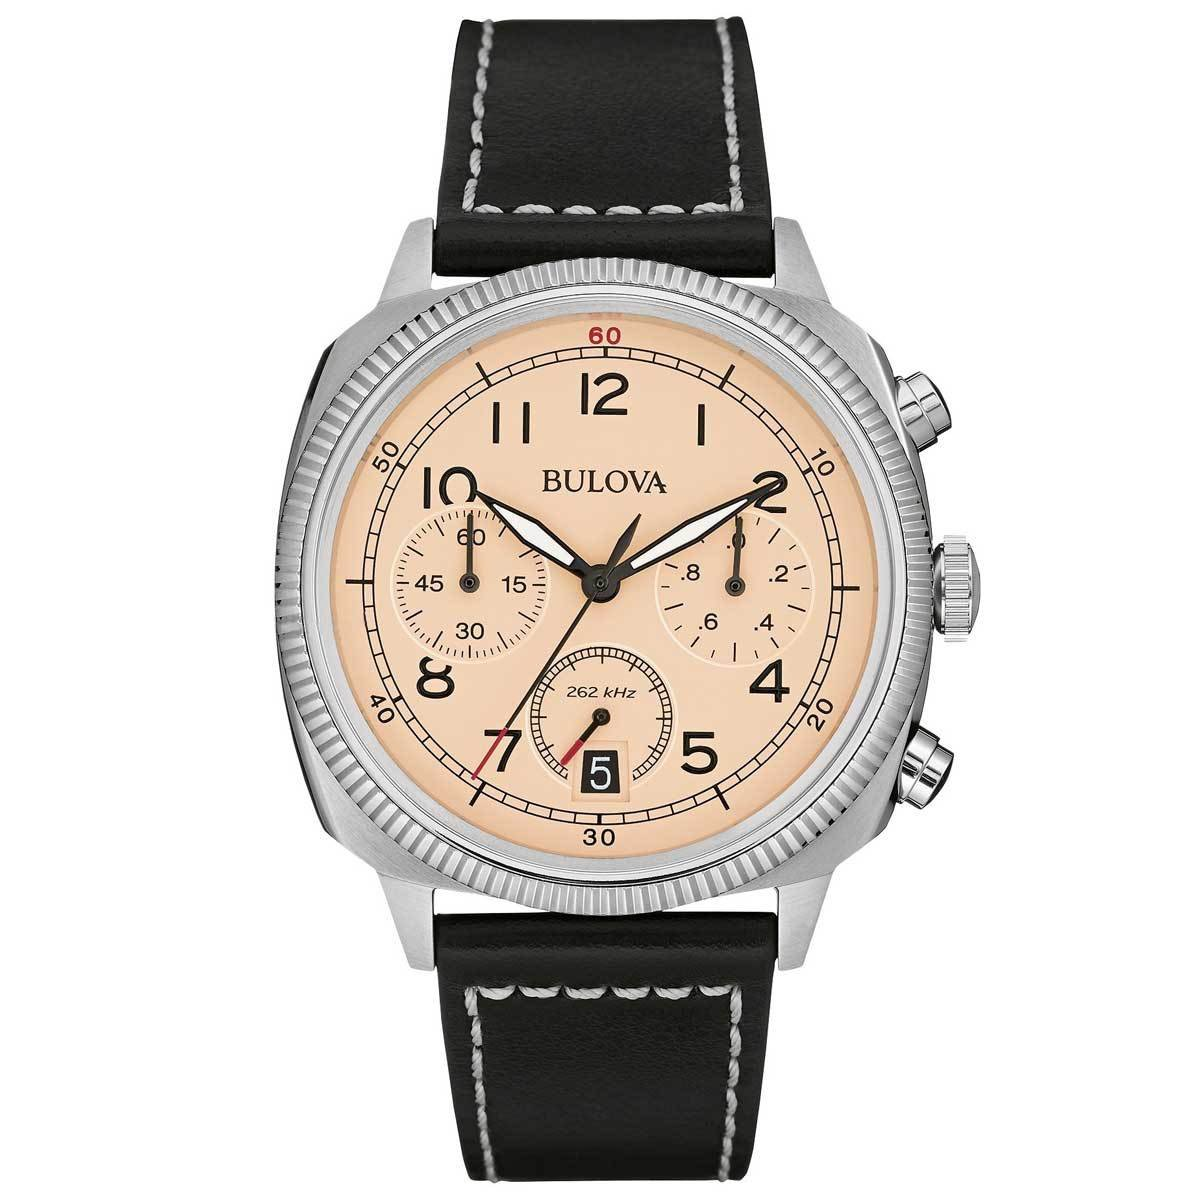 Bulova Military Men's UHF Watch with Black Dial Analogue Display and Brown Leather Strap